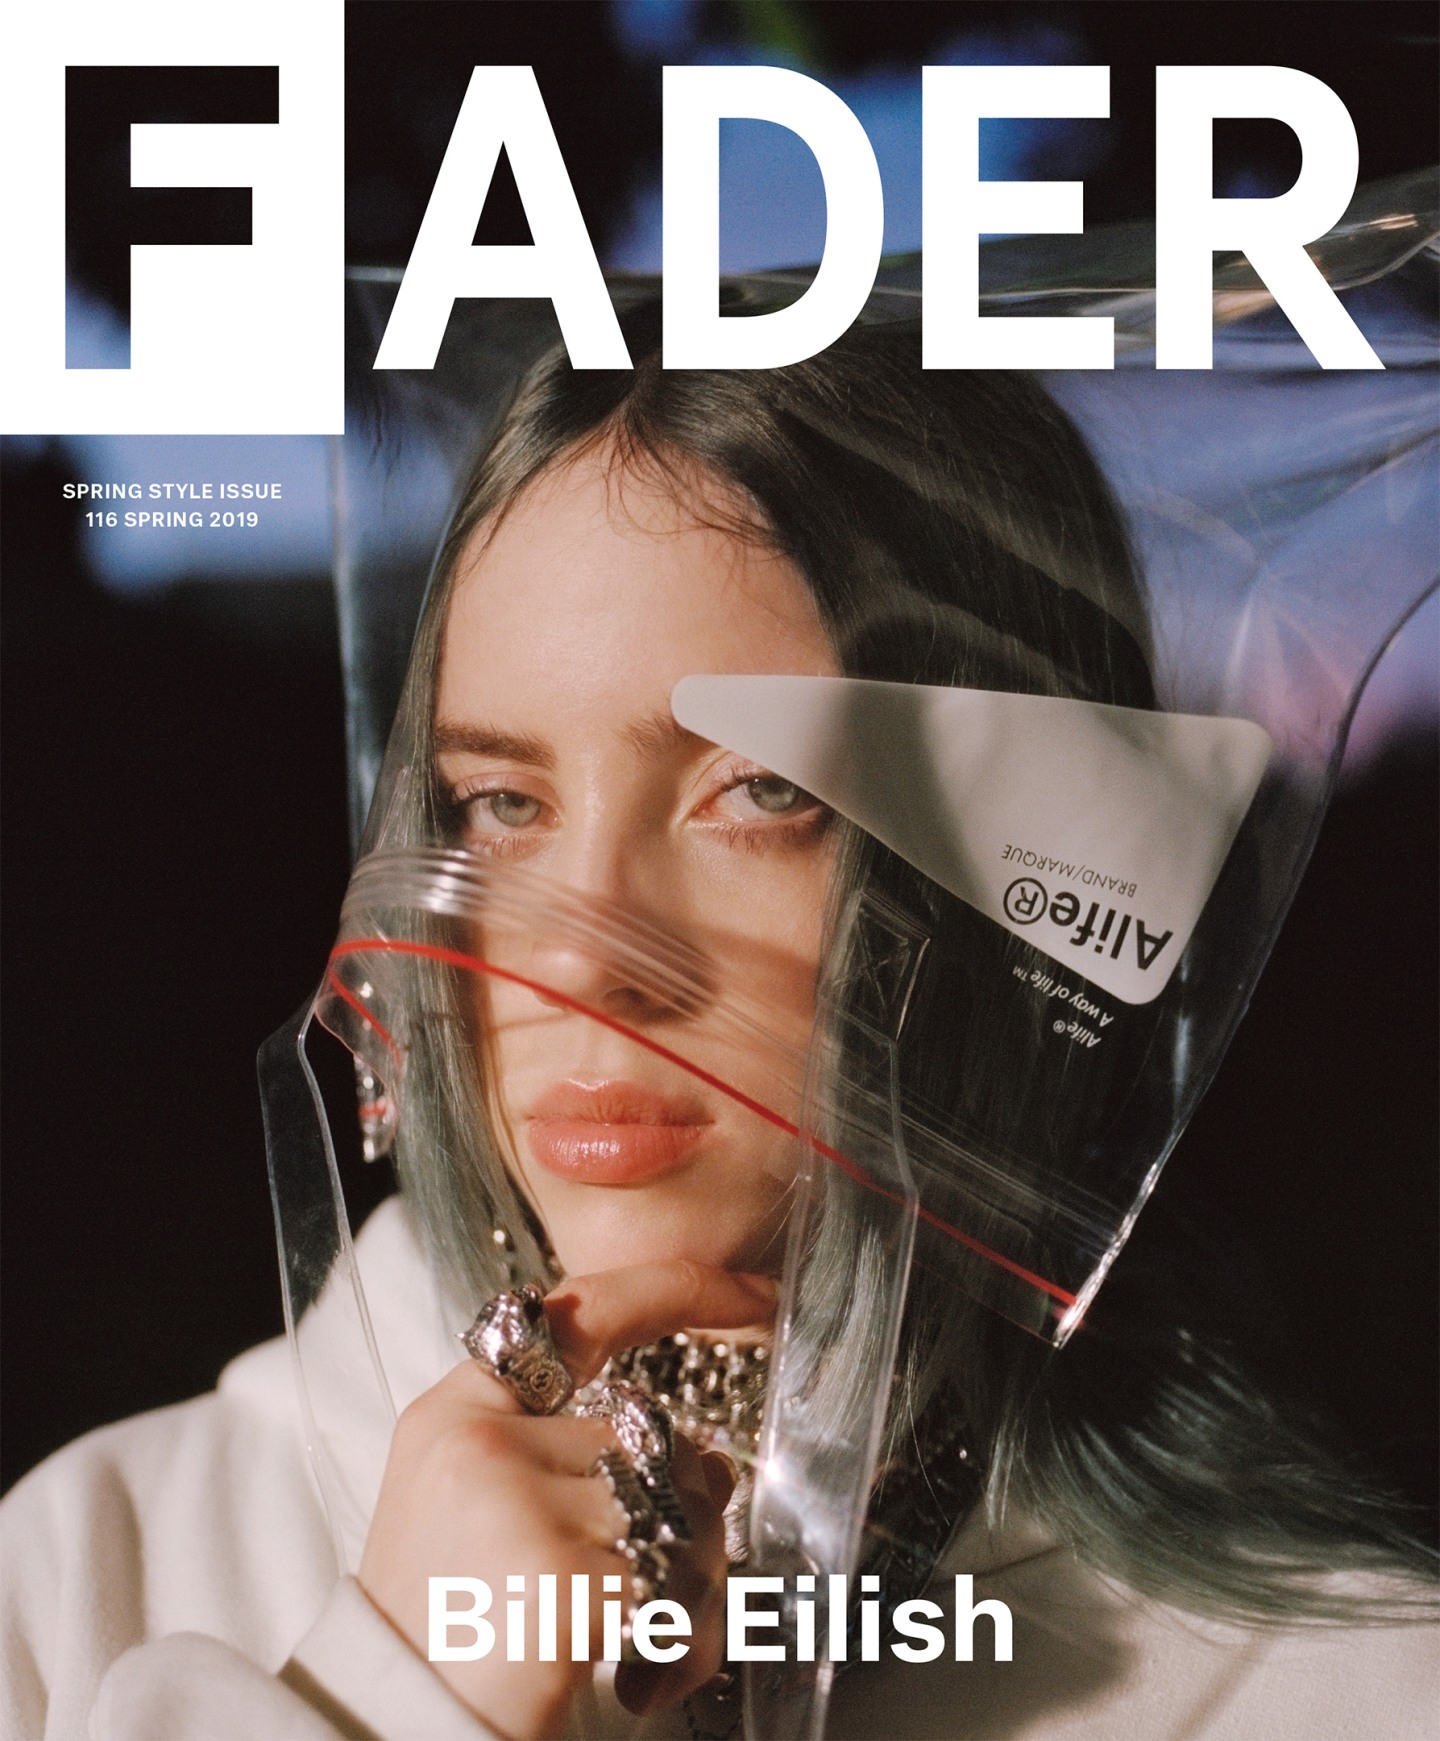 Who S Billie Eilish The Fader